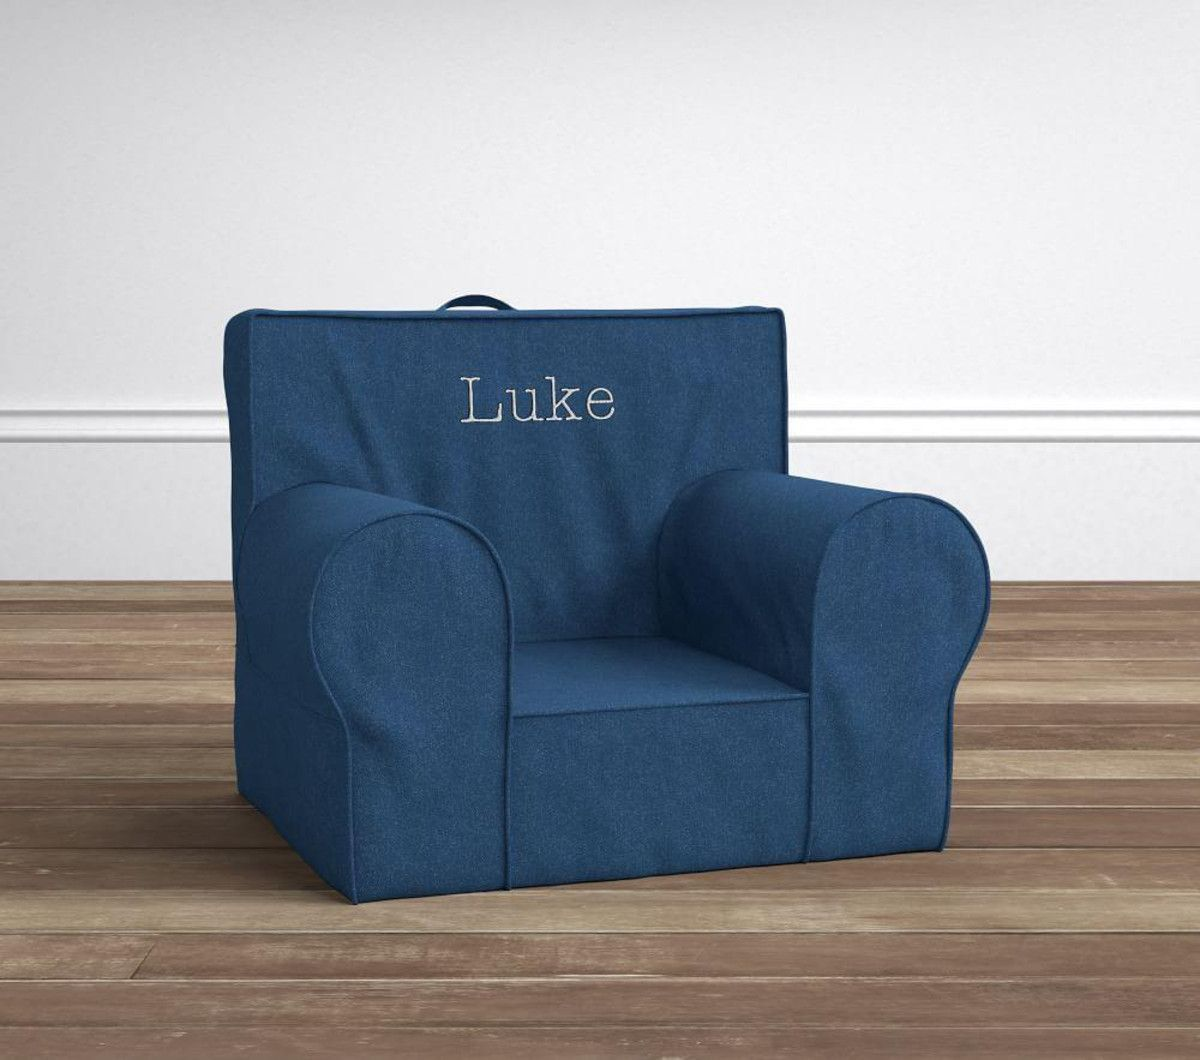 Denim anywhere chair slipcovers for chairs kids lounge